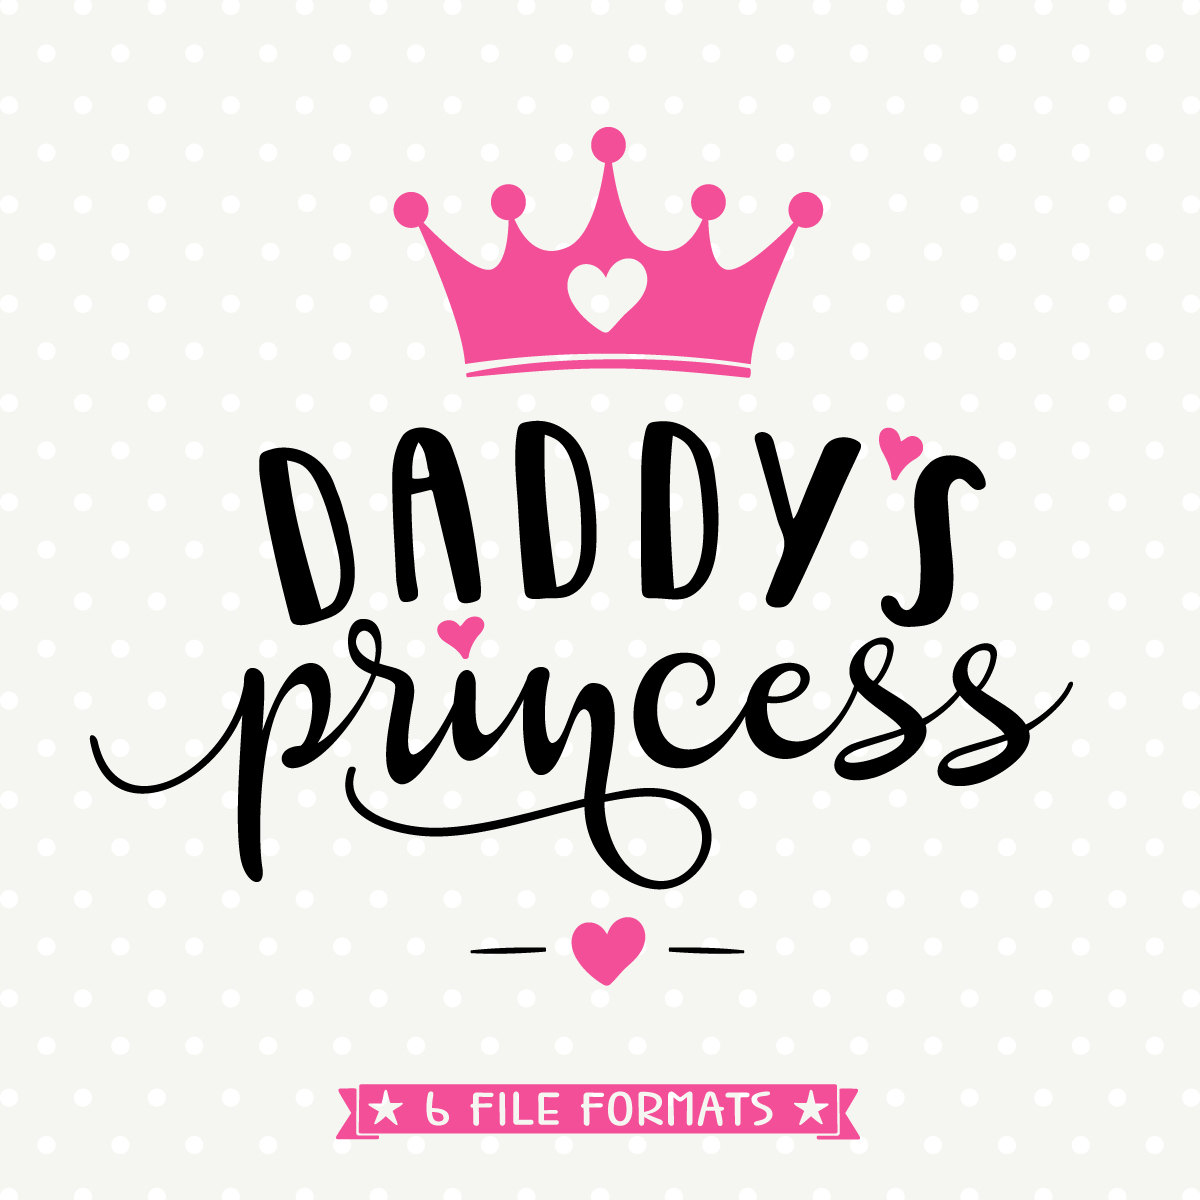 Princess svg #17, Download drawings